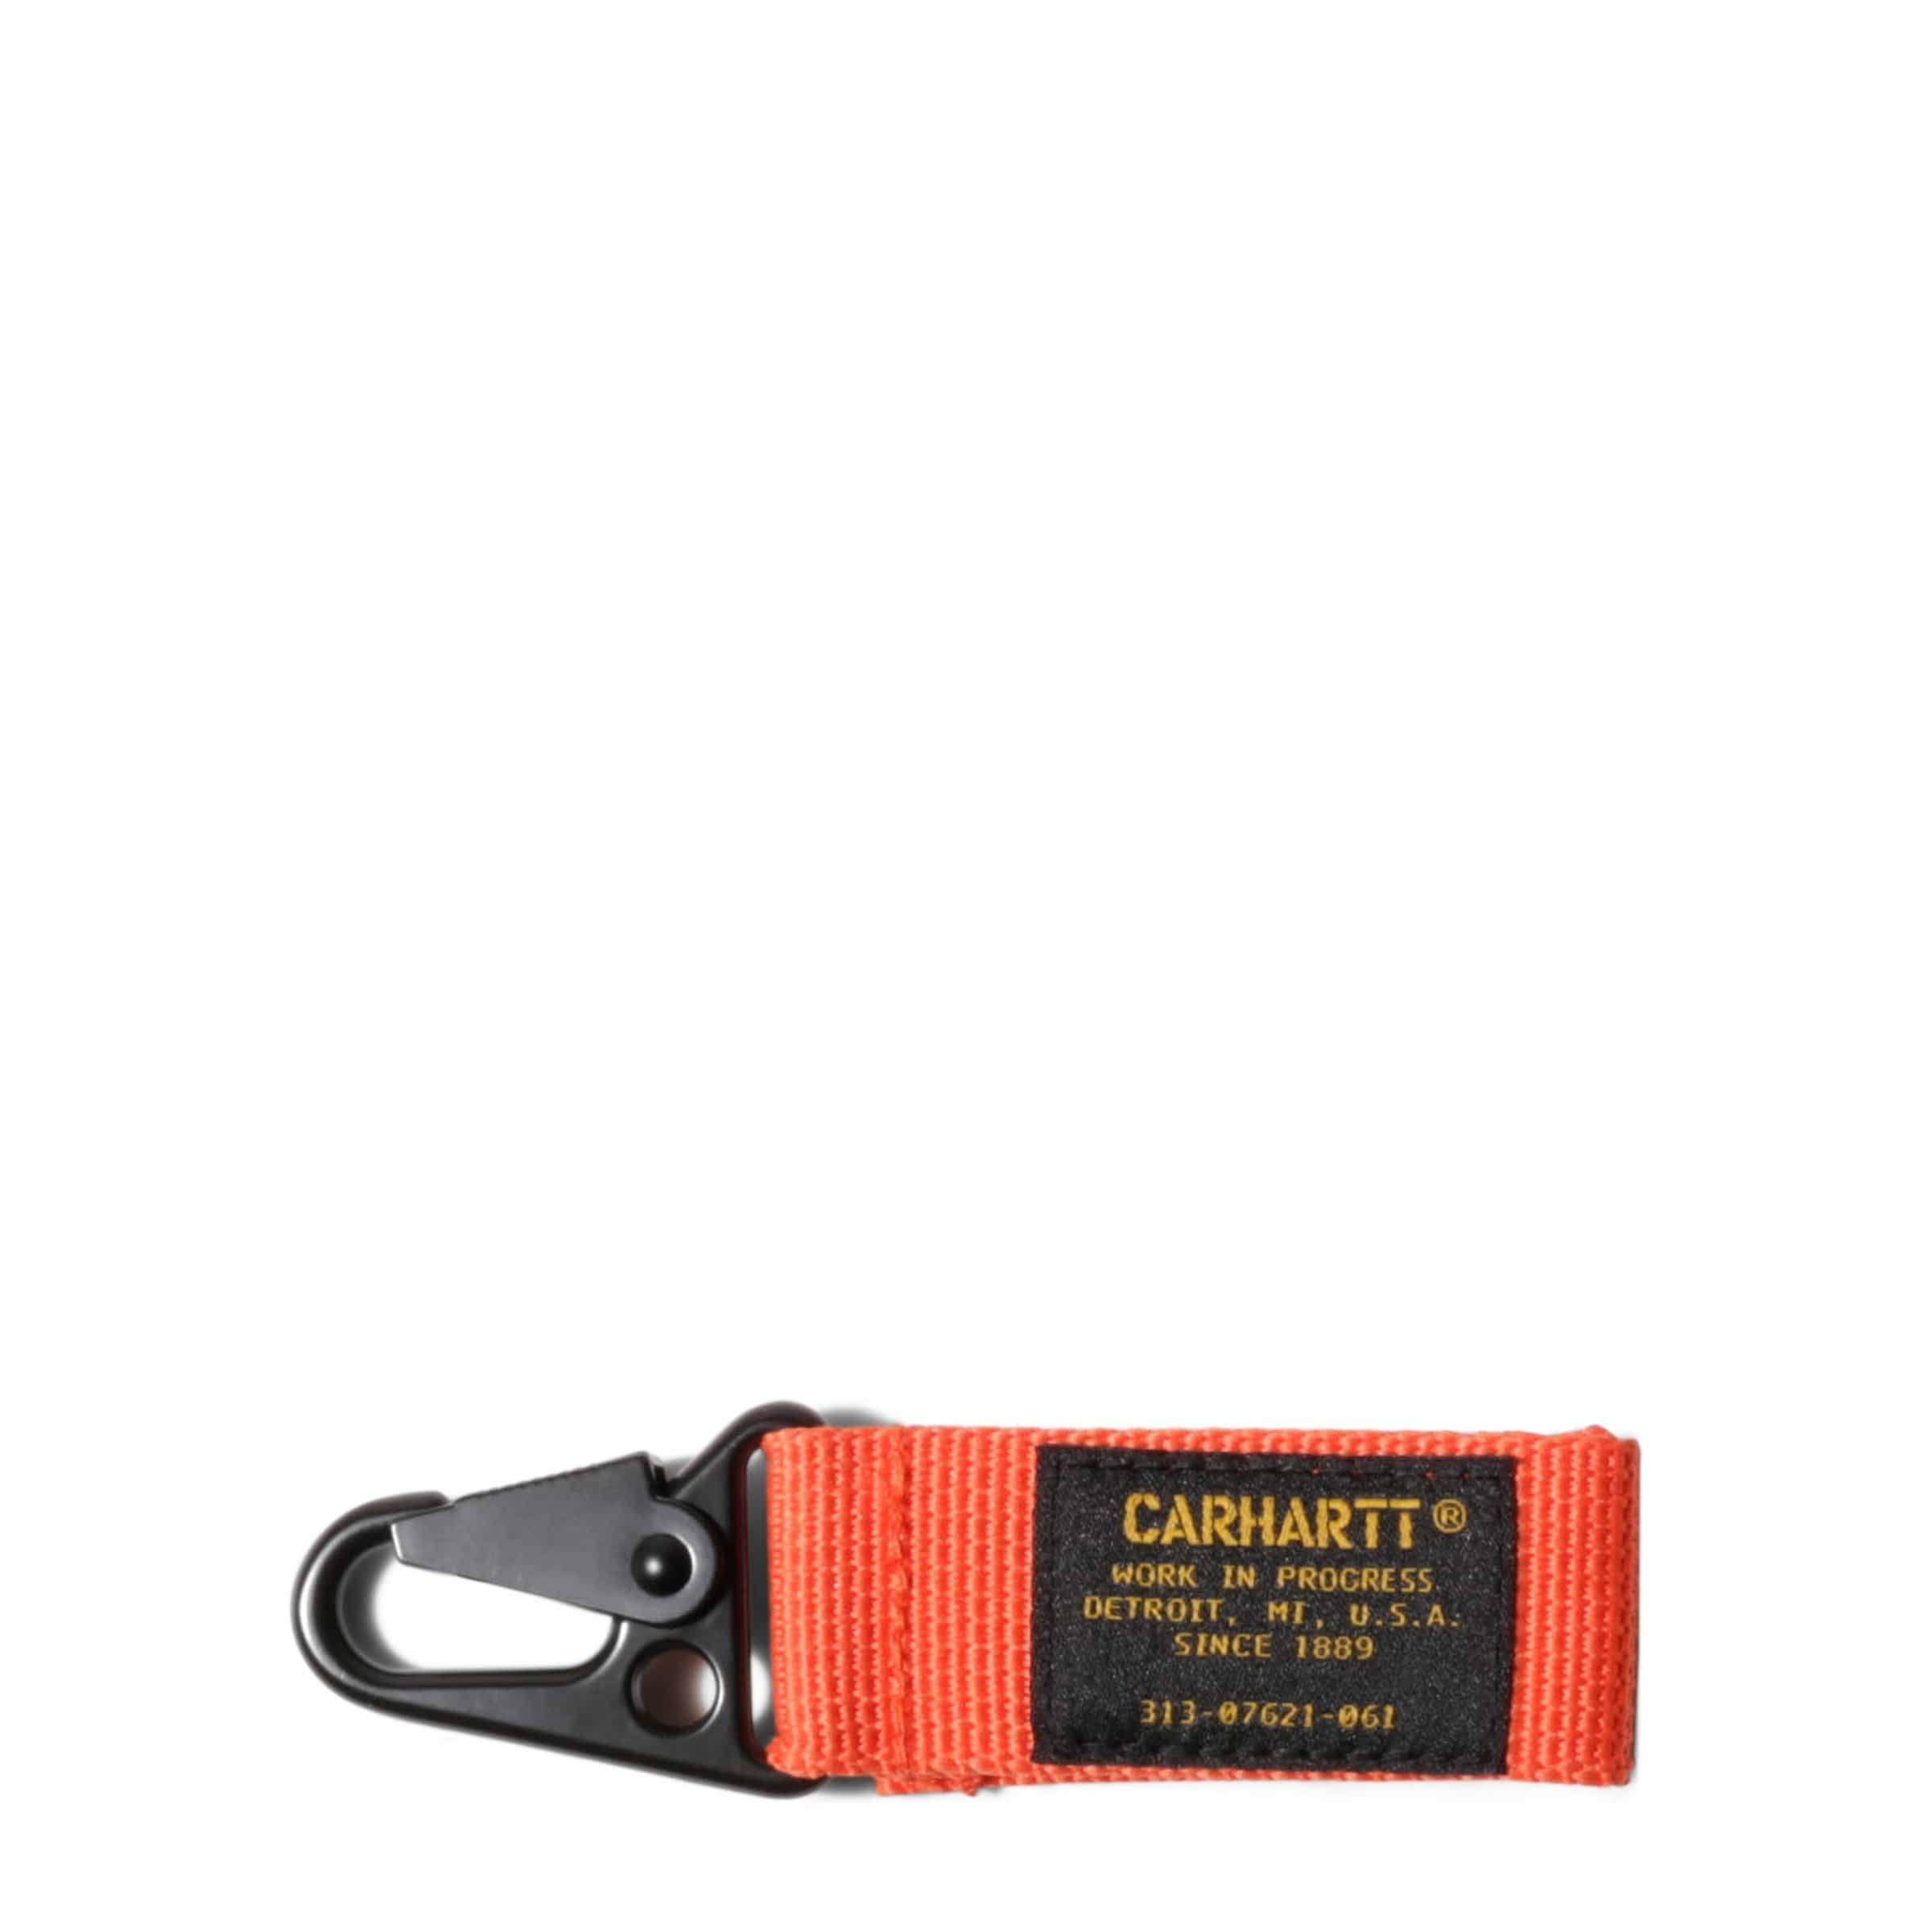 Carhartt W.I.P. Bags & Accessories PEPPER / O/S MILITARY KEY CHAIN